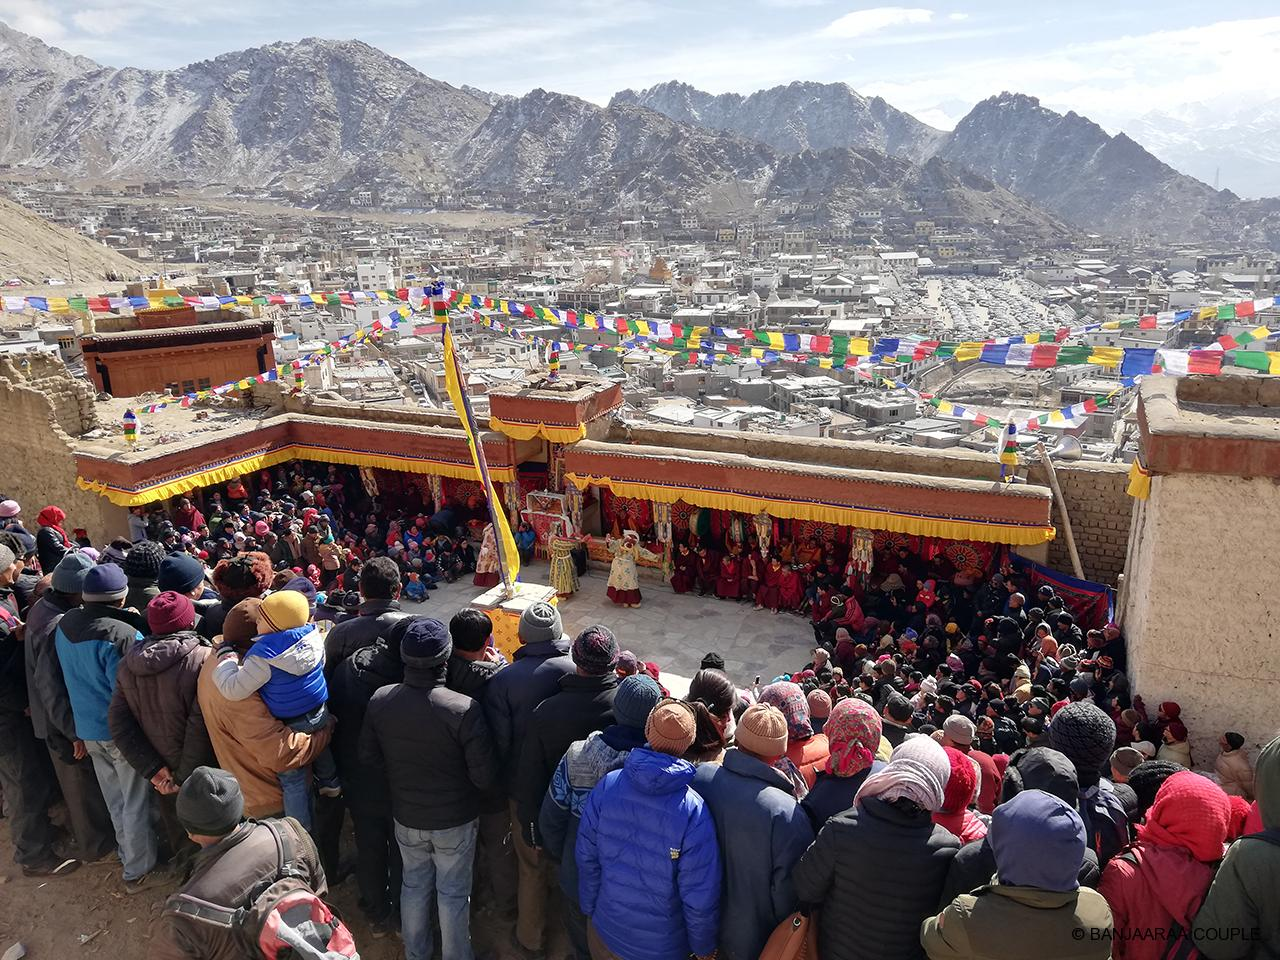 Crowd Cheering the monks peforming the Cham dance